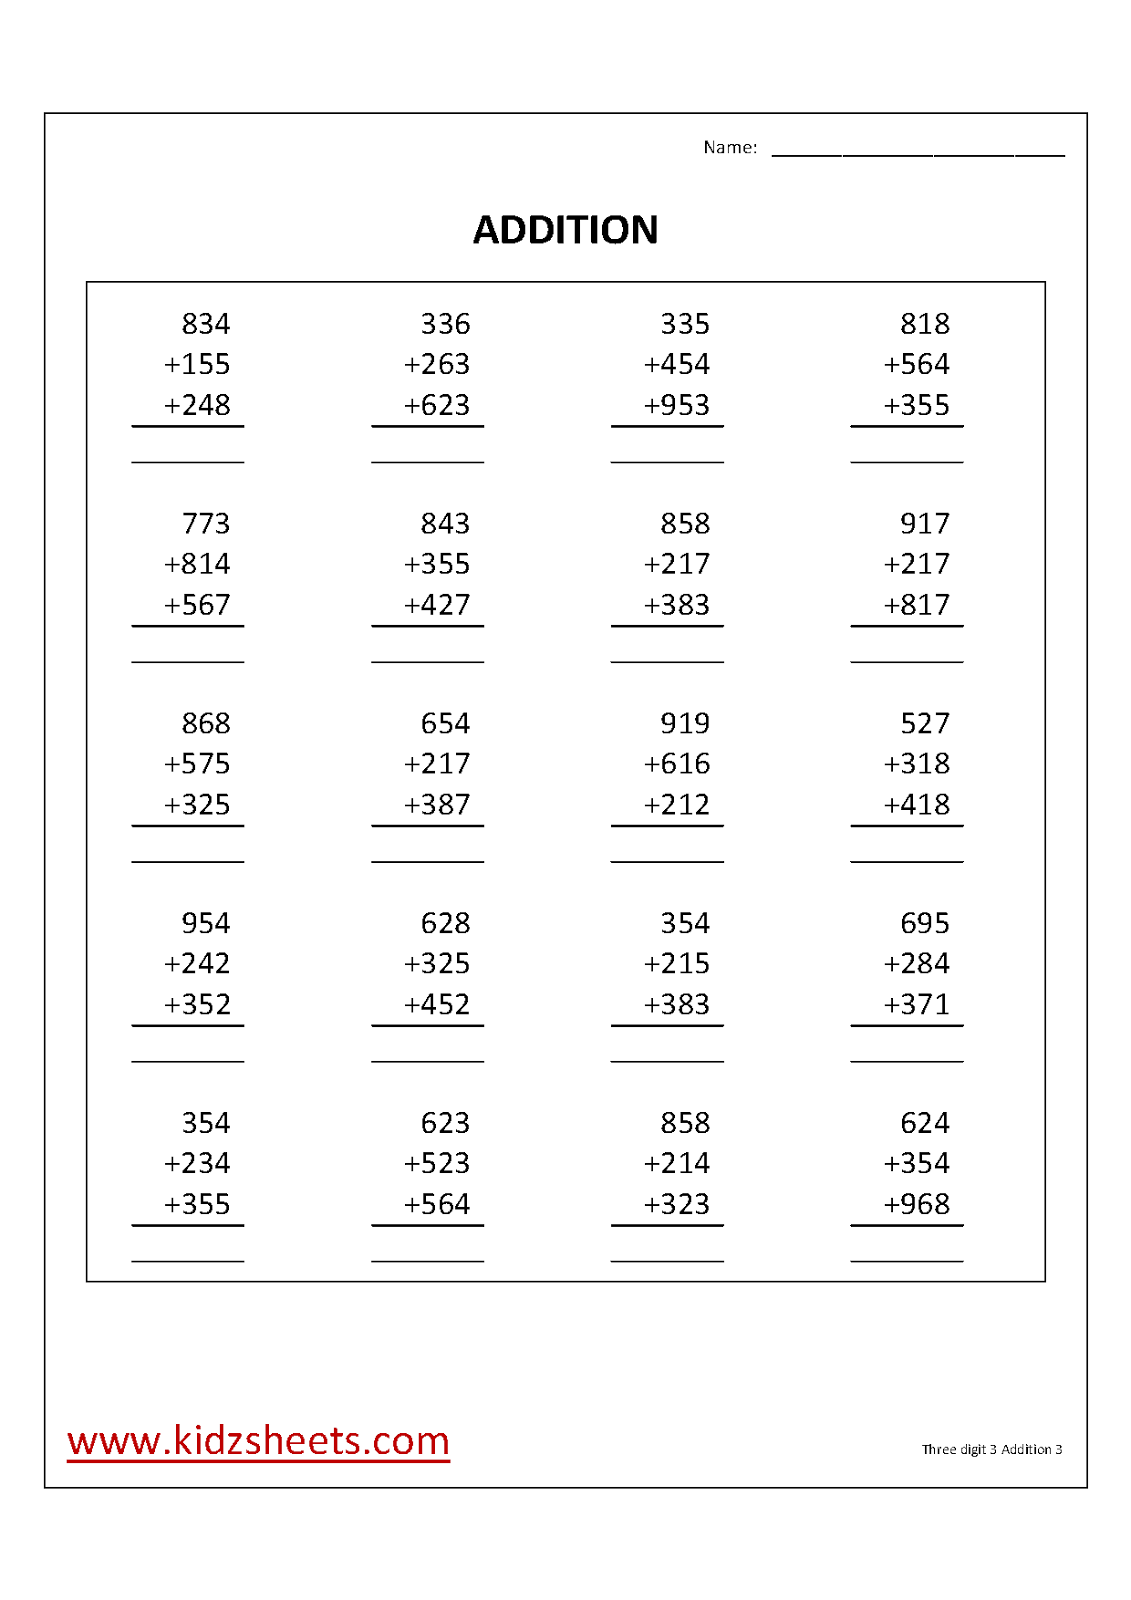 Kidz Worksheets Third Grade Three Digit 3 Number Addition